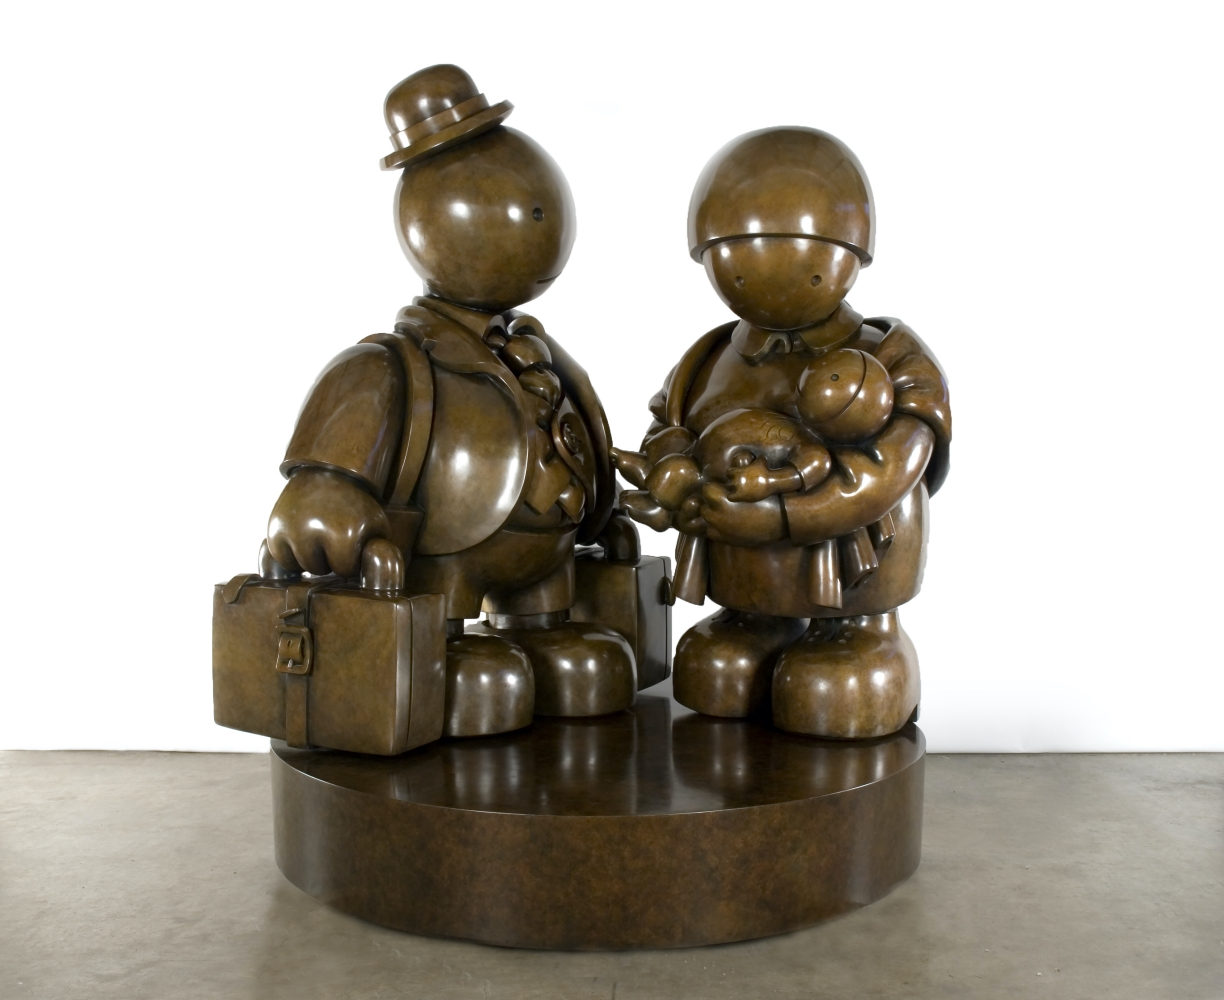 Bronze sculpture of an immigrant family with baby by Tom Otterness.